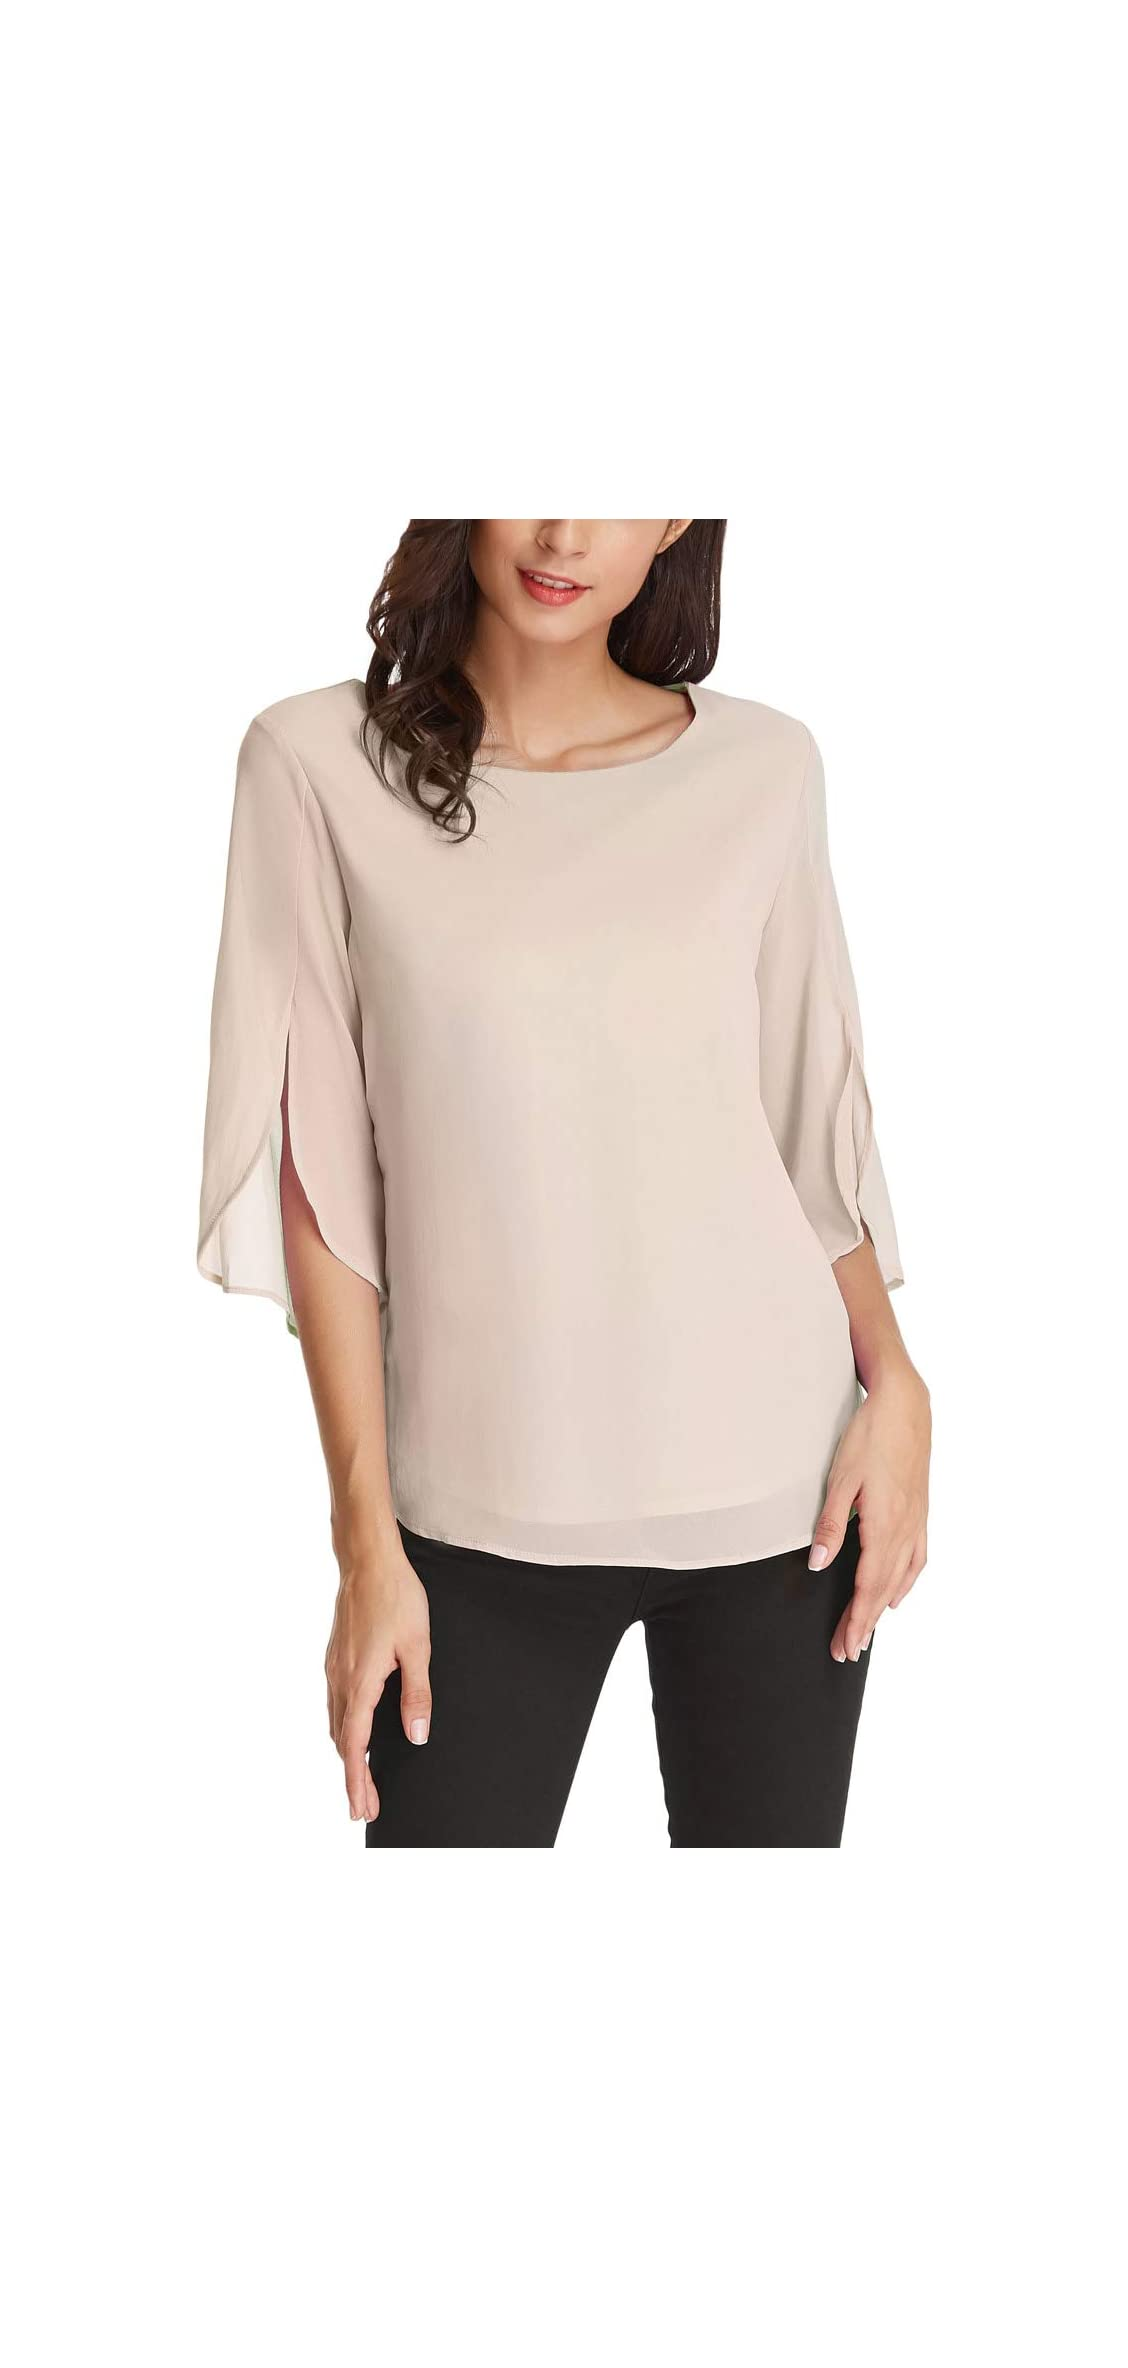 Women's Casual Chiffon Blouse Tops Half Ruffle